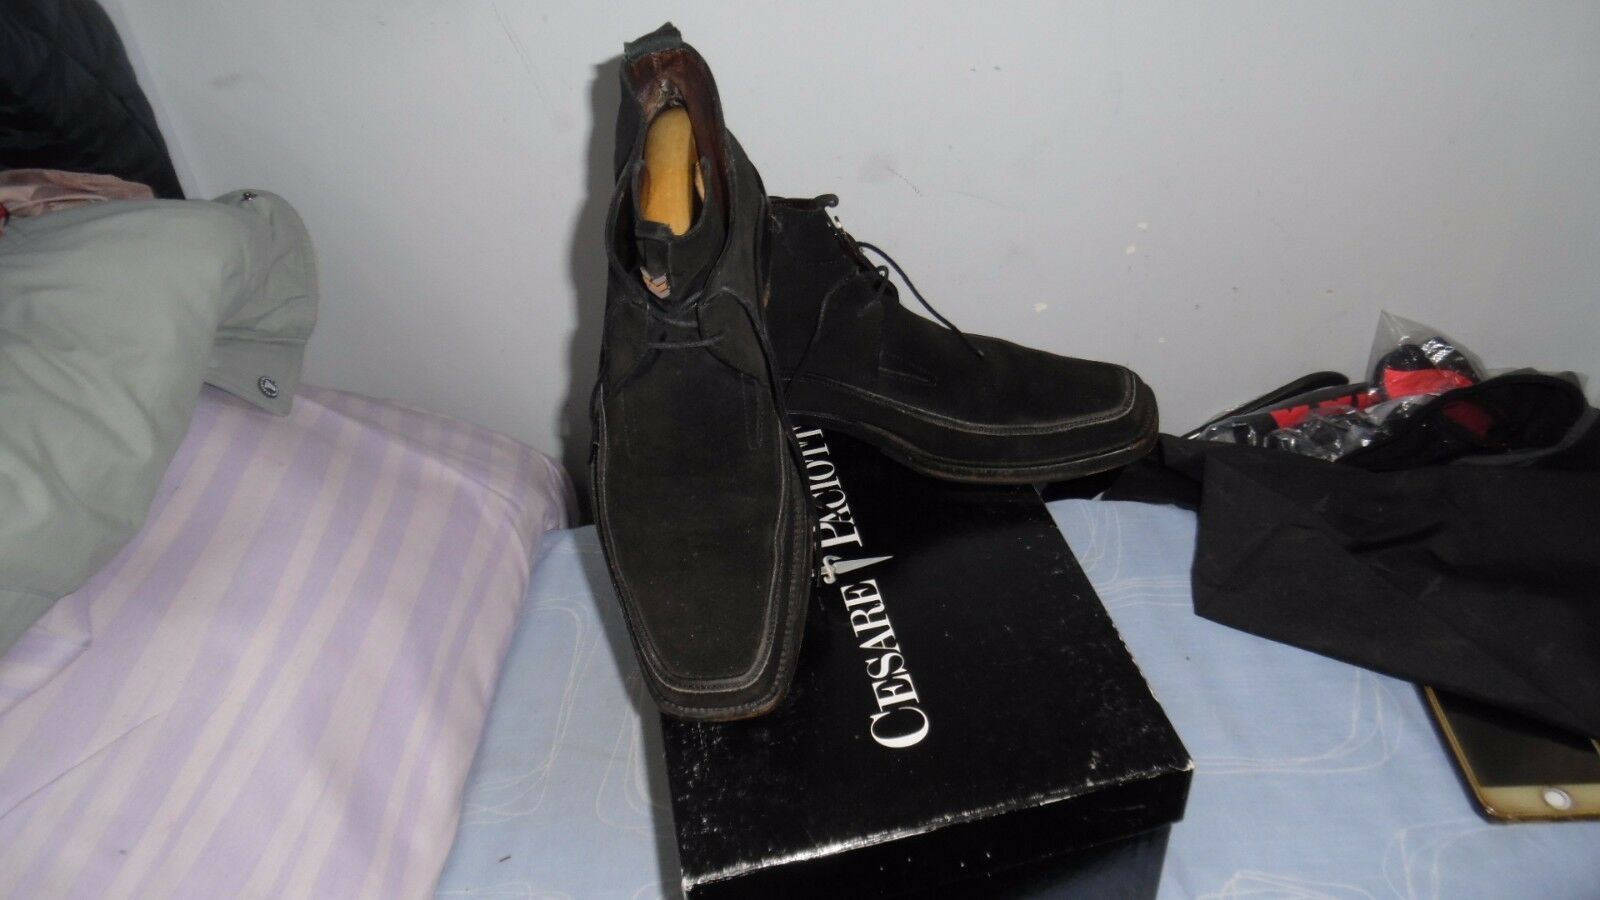 CESARE PACIOTTI MADE IN ITALY Men's Black Suede Leather shoes, Uk 6, EU 40